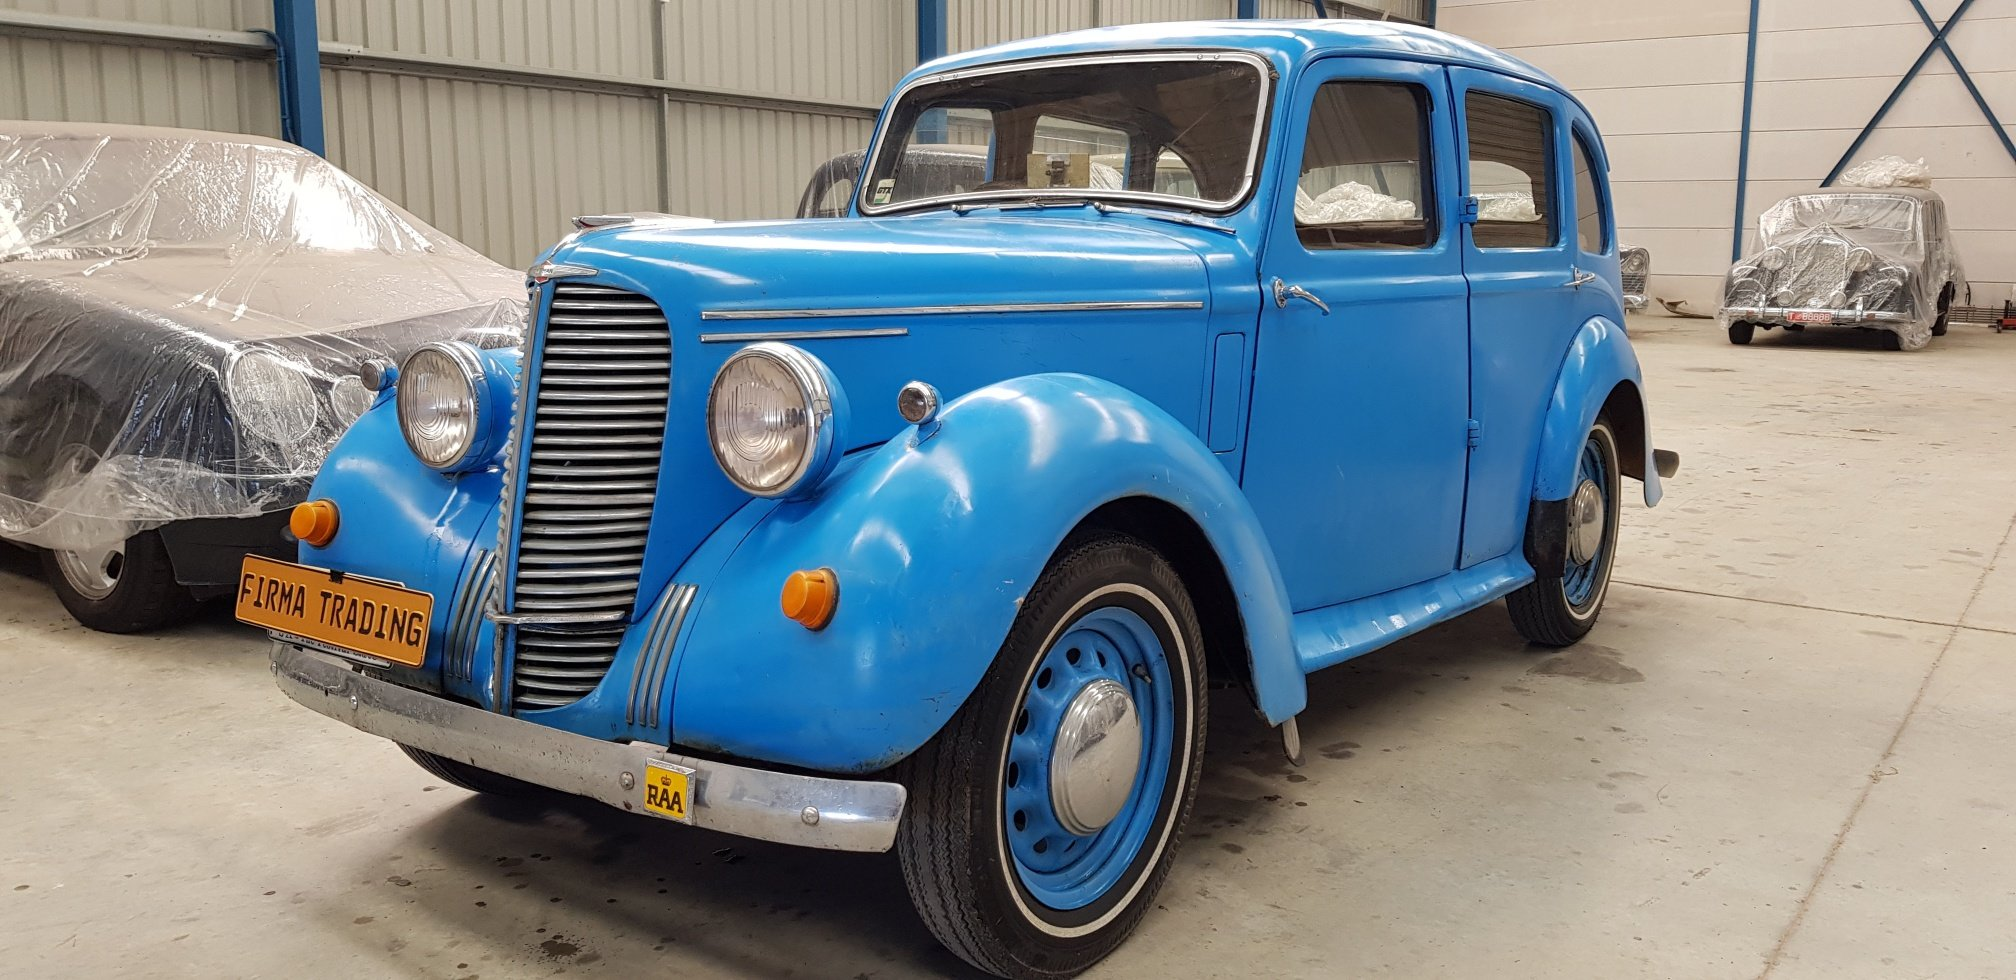 1946 Hillman Minx By Firma Trading Australia For Sale (picture 1 of 6)